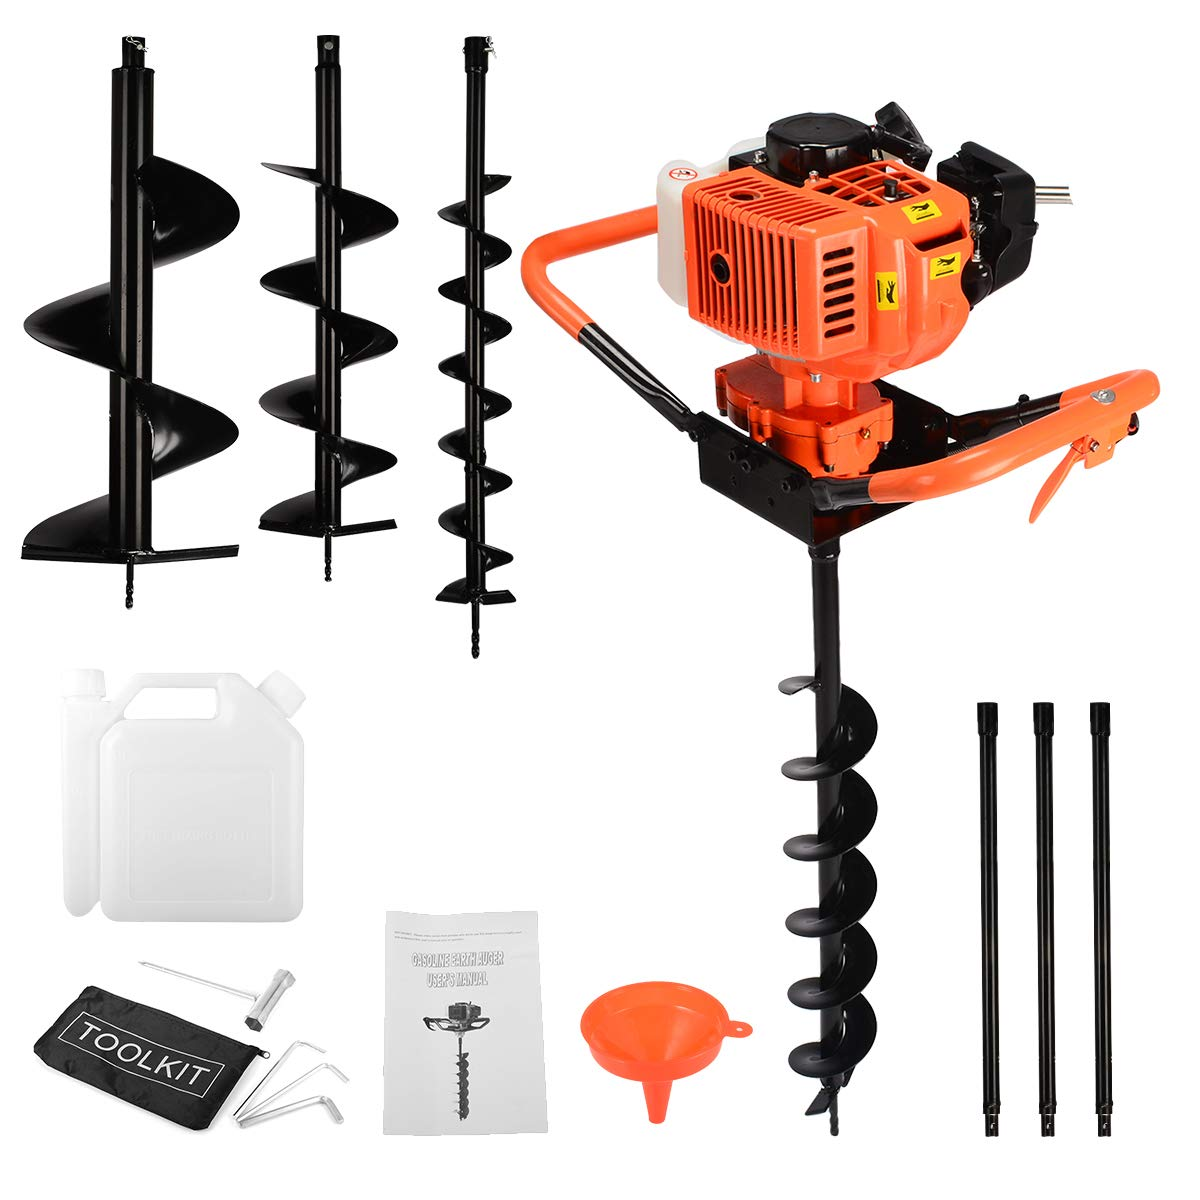 Extension Rods 3 Bits 3 /& 6 /& 9 72cc 3KW Petrol Powered Earth Auger Post Hole Digger Borer Ground Drill